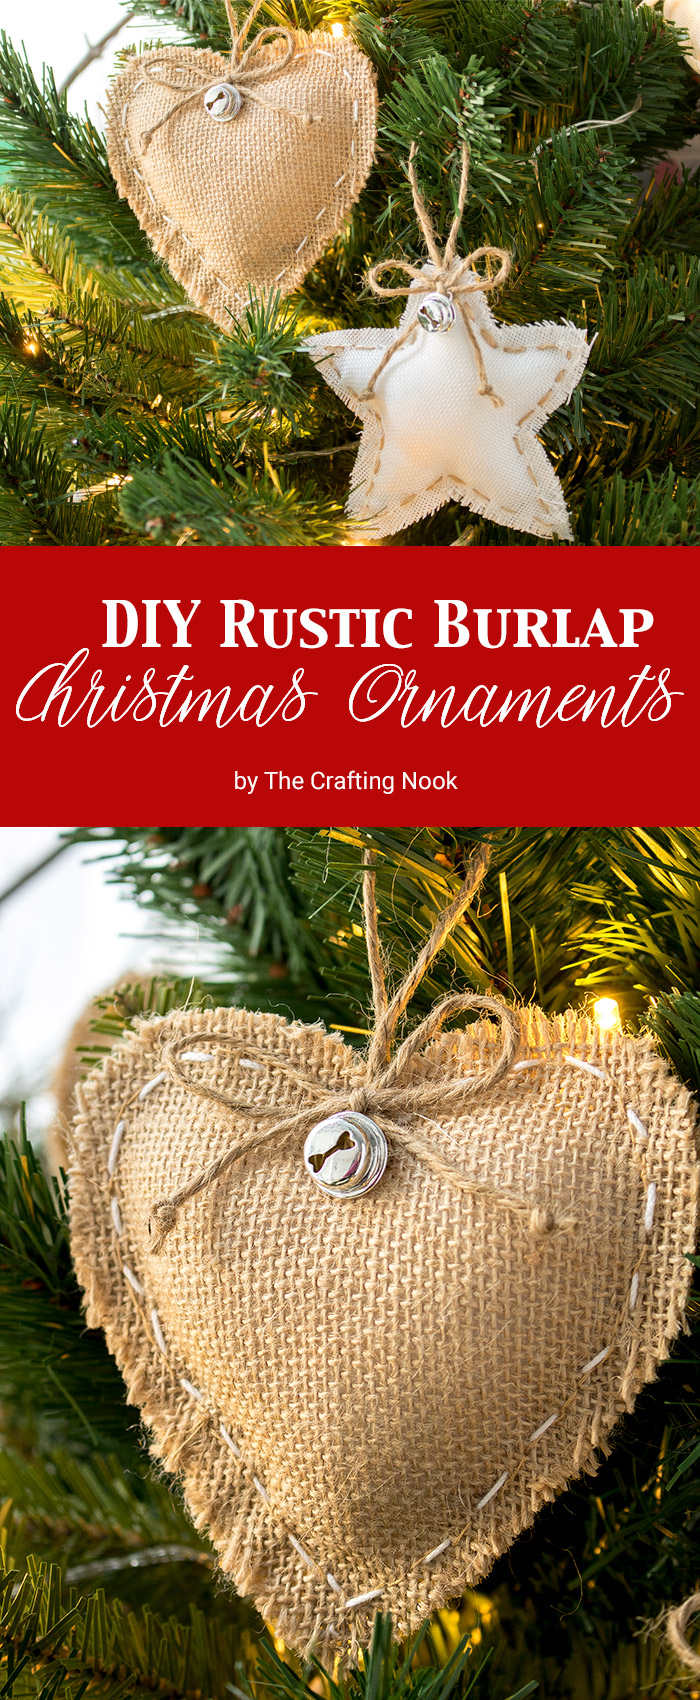 DIY Rustic Burlap Christmas Ornaments The Crafting Nook By - Diy burlap christmas decorations